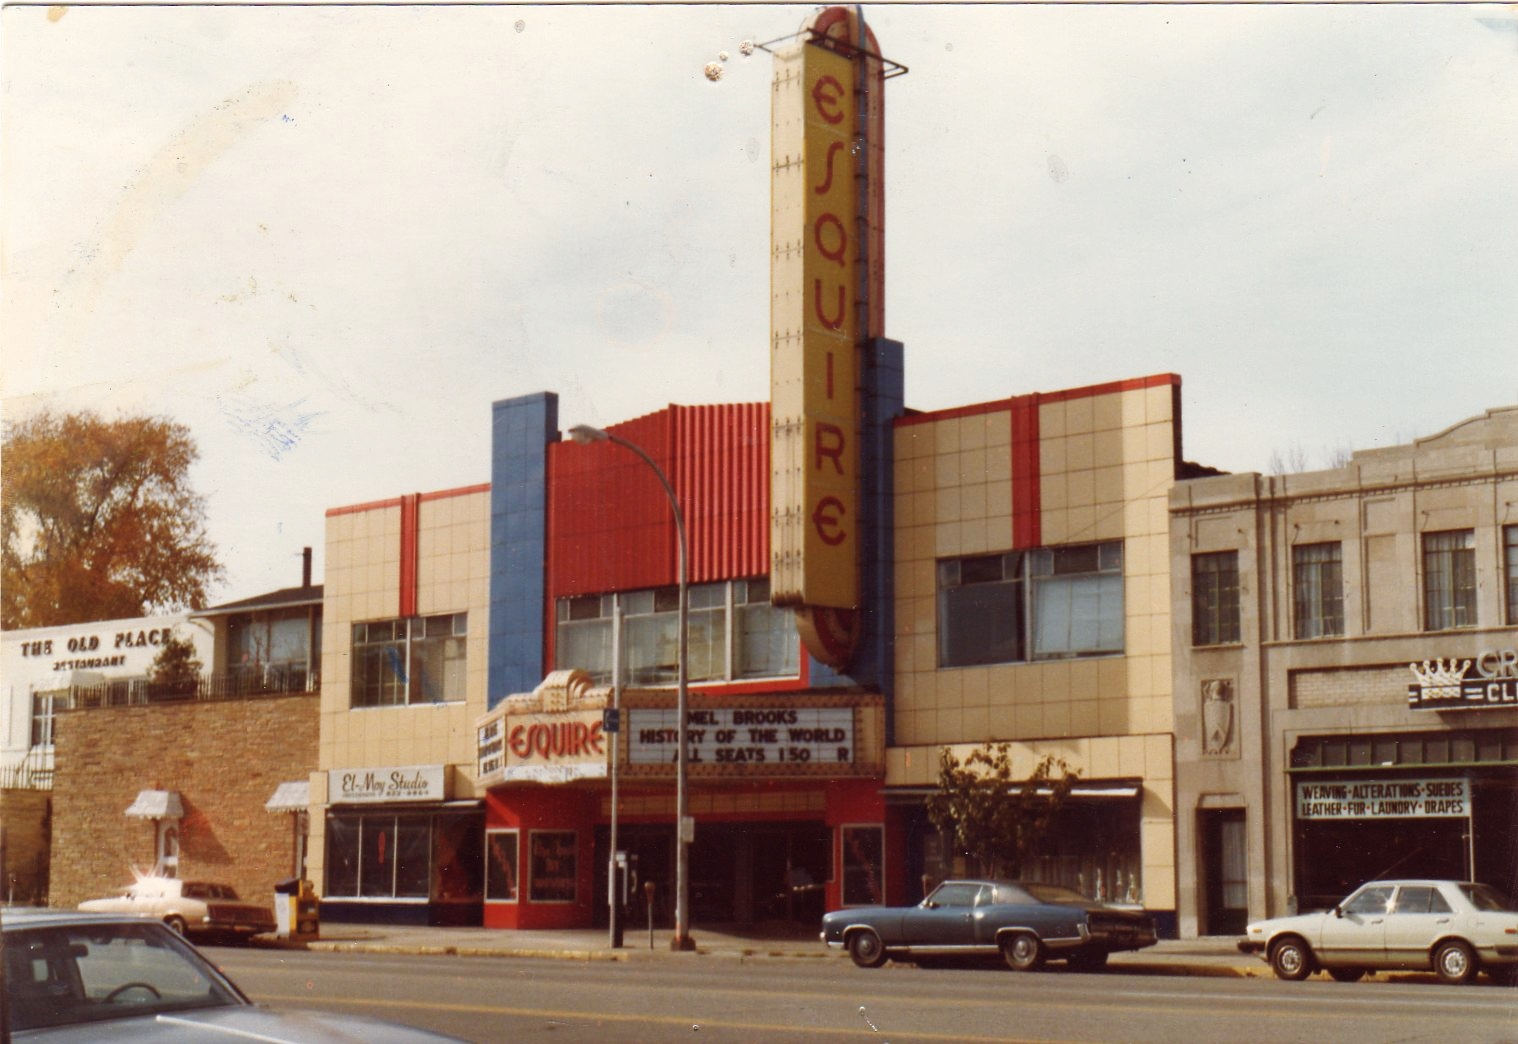 Photo of Esquire Theater in Grosse Pointe Park, Michigan, courtesy of Kate Ford.